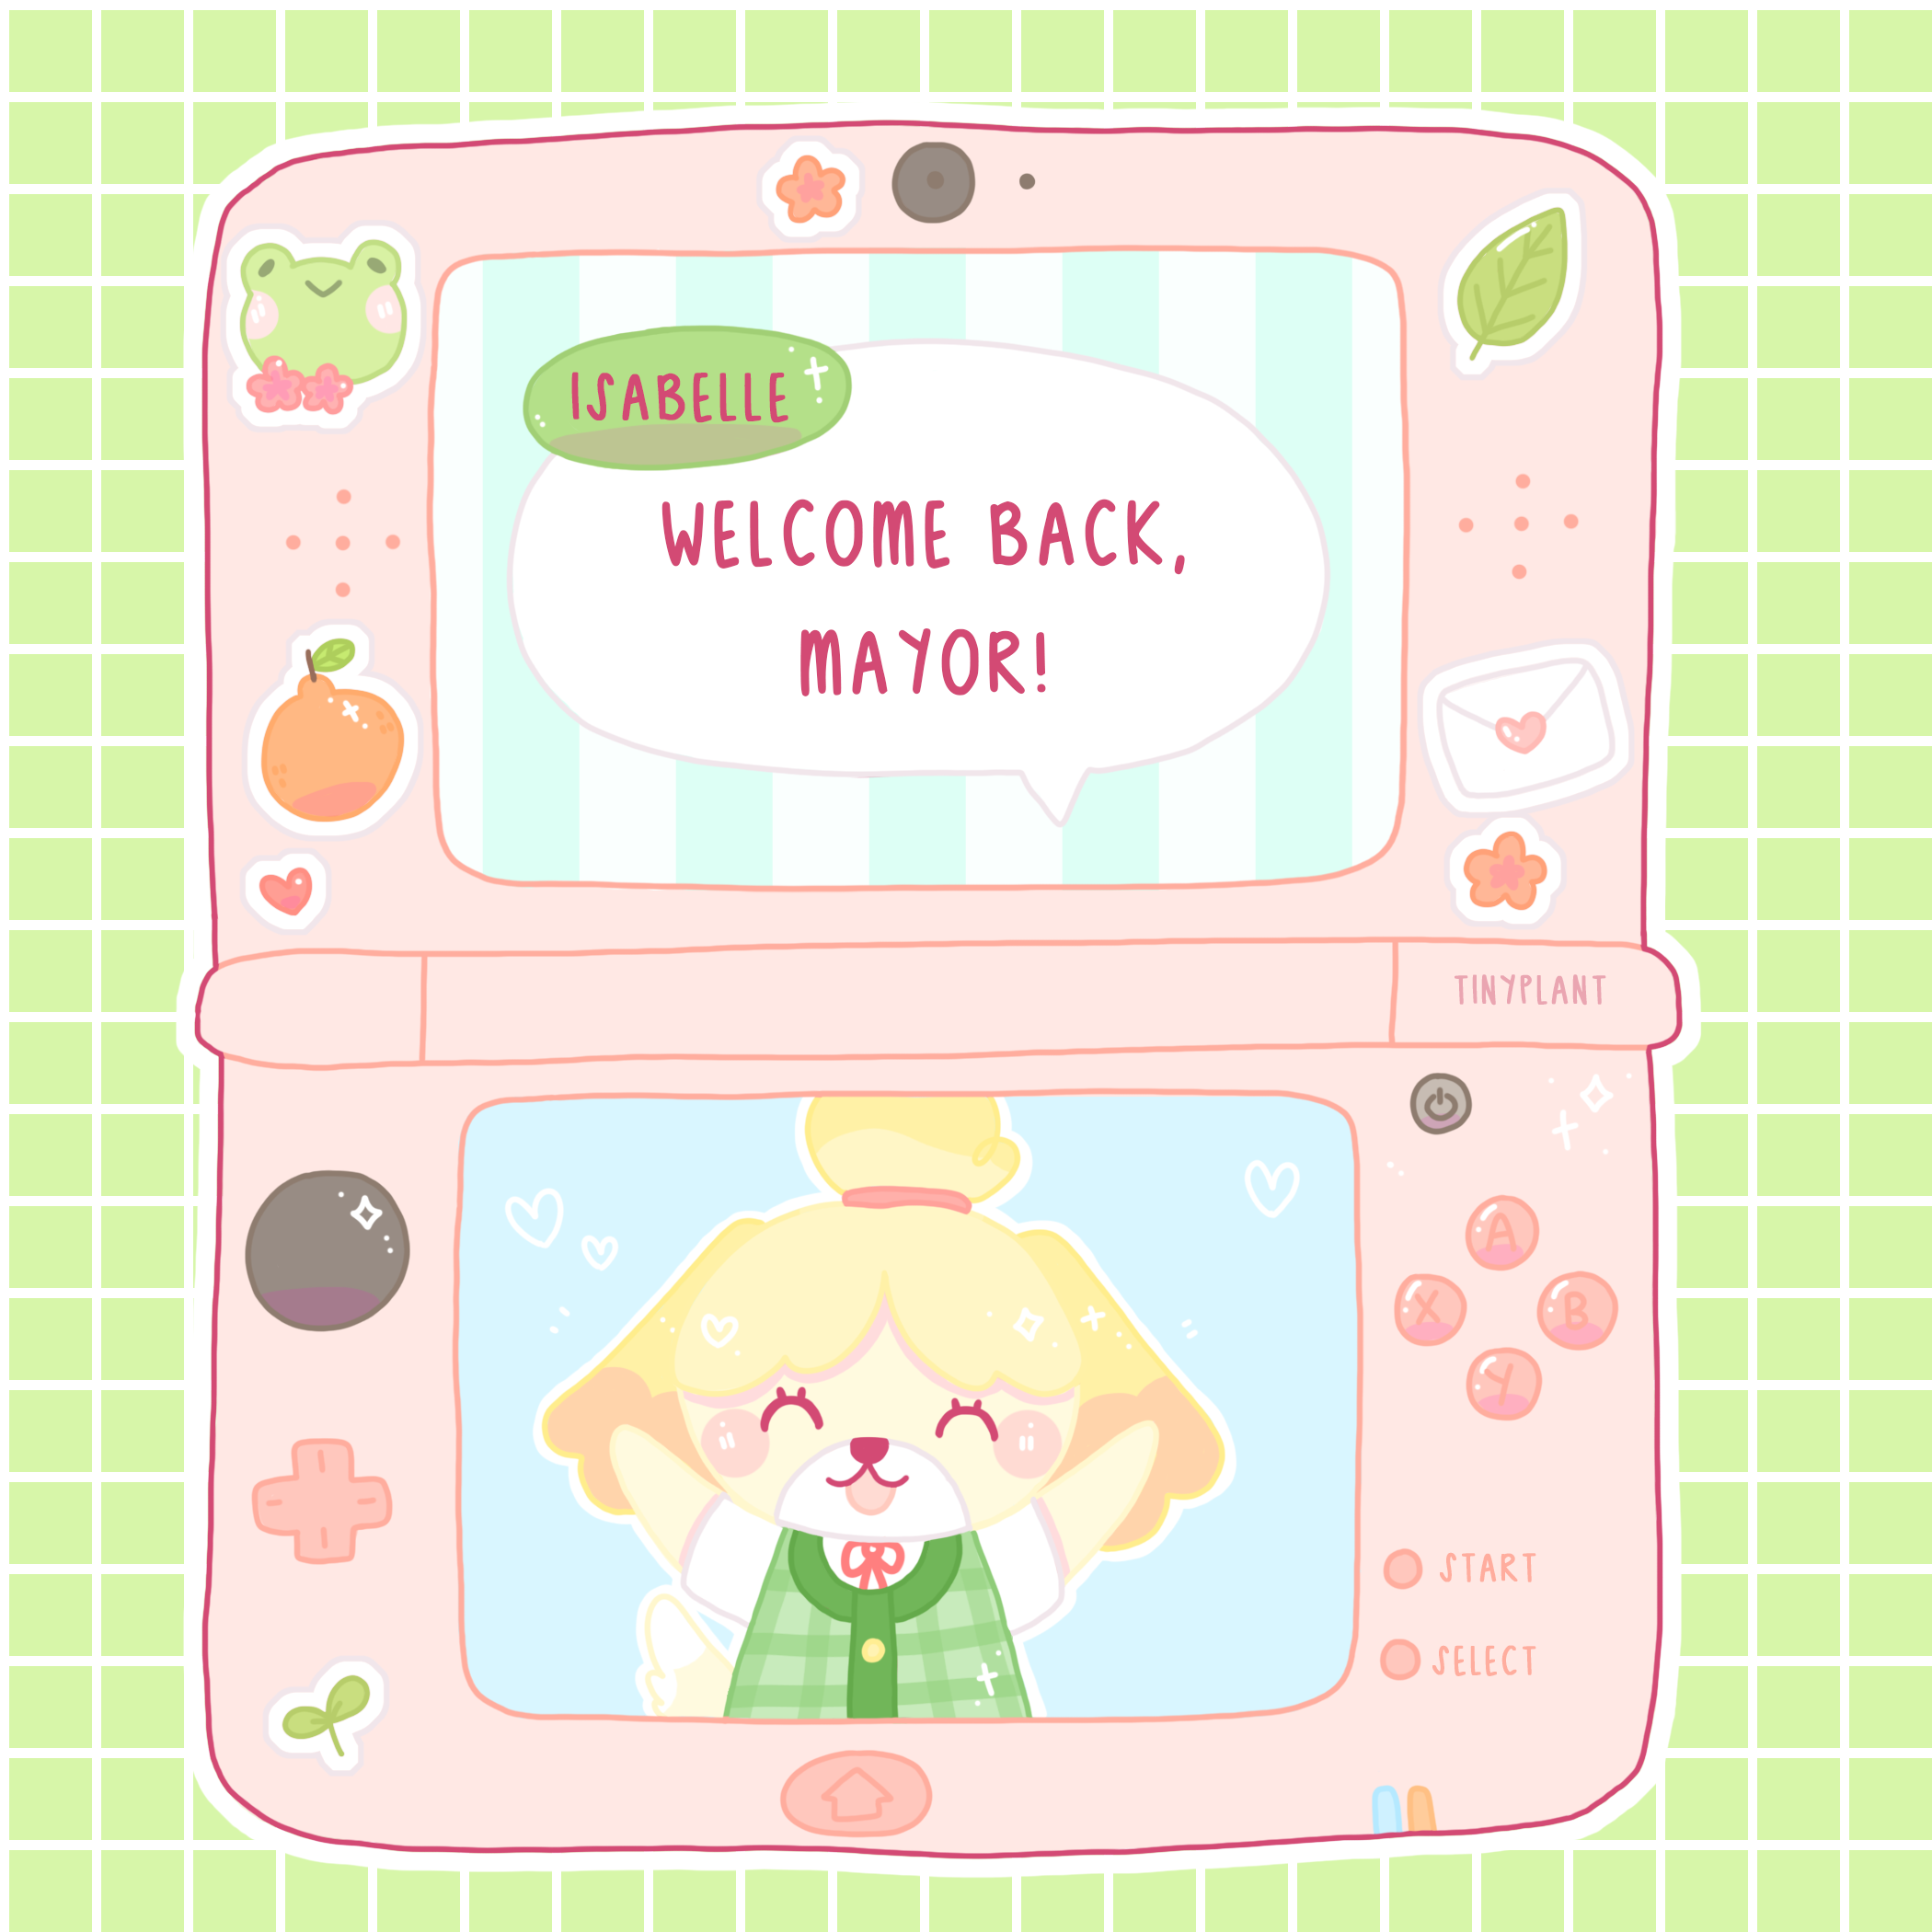 acnl_post.png